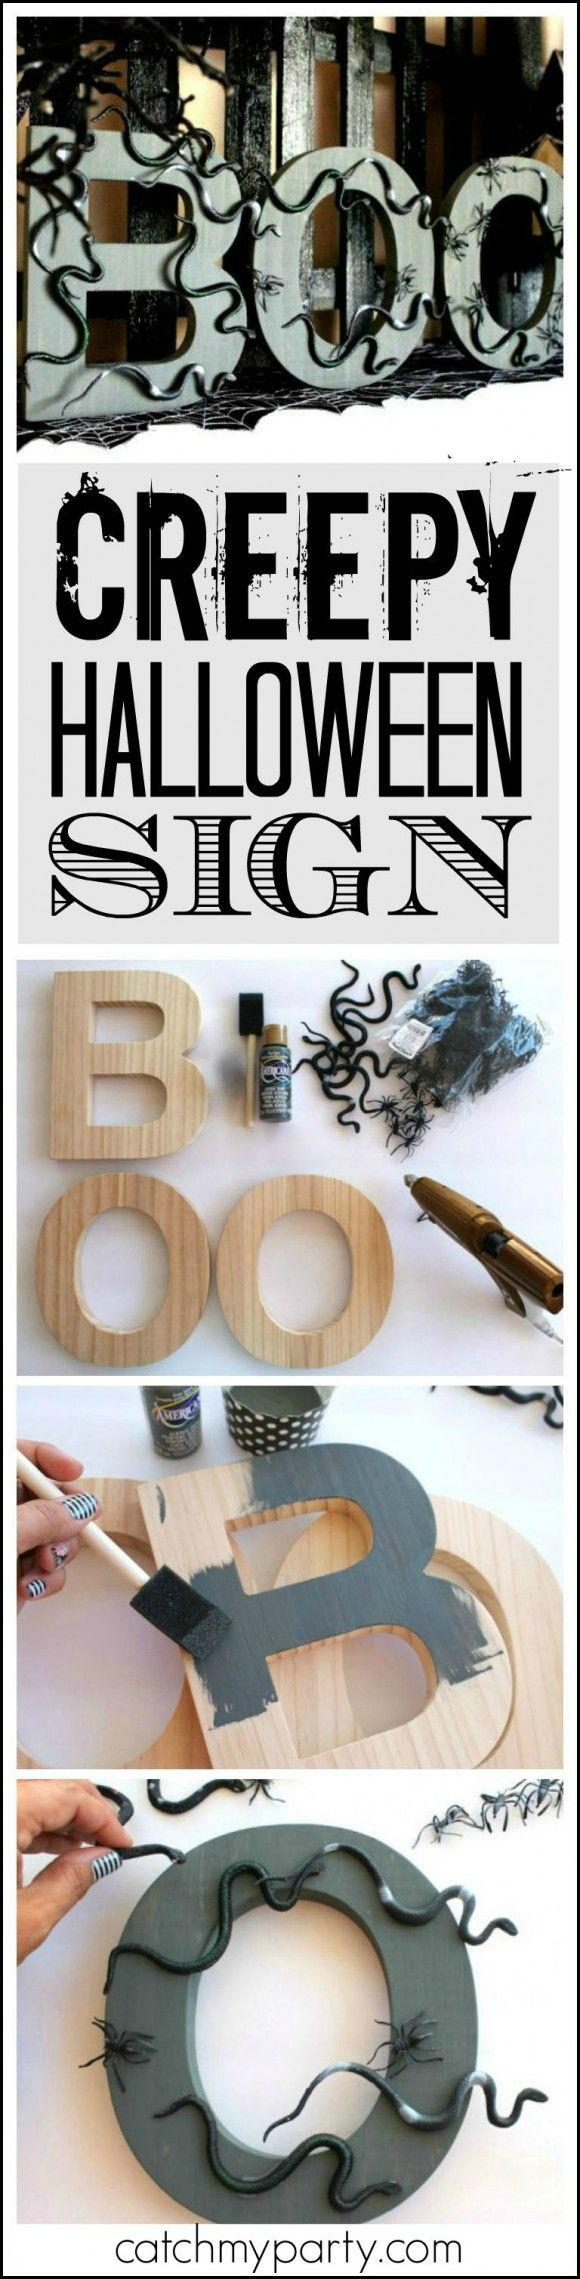 Learn how to make this creepy fun DIY Halloween BOO Sign from Laura Aguirre!